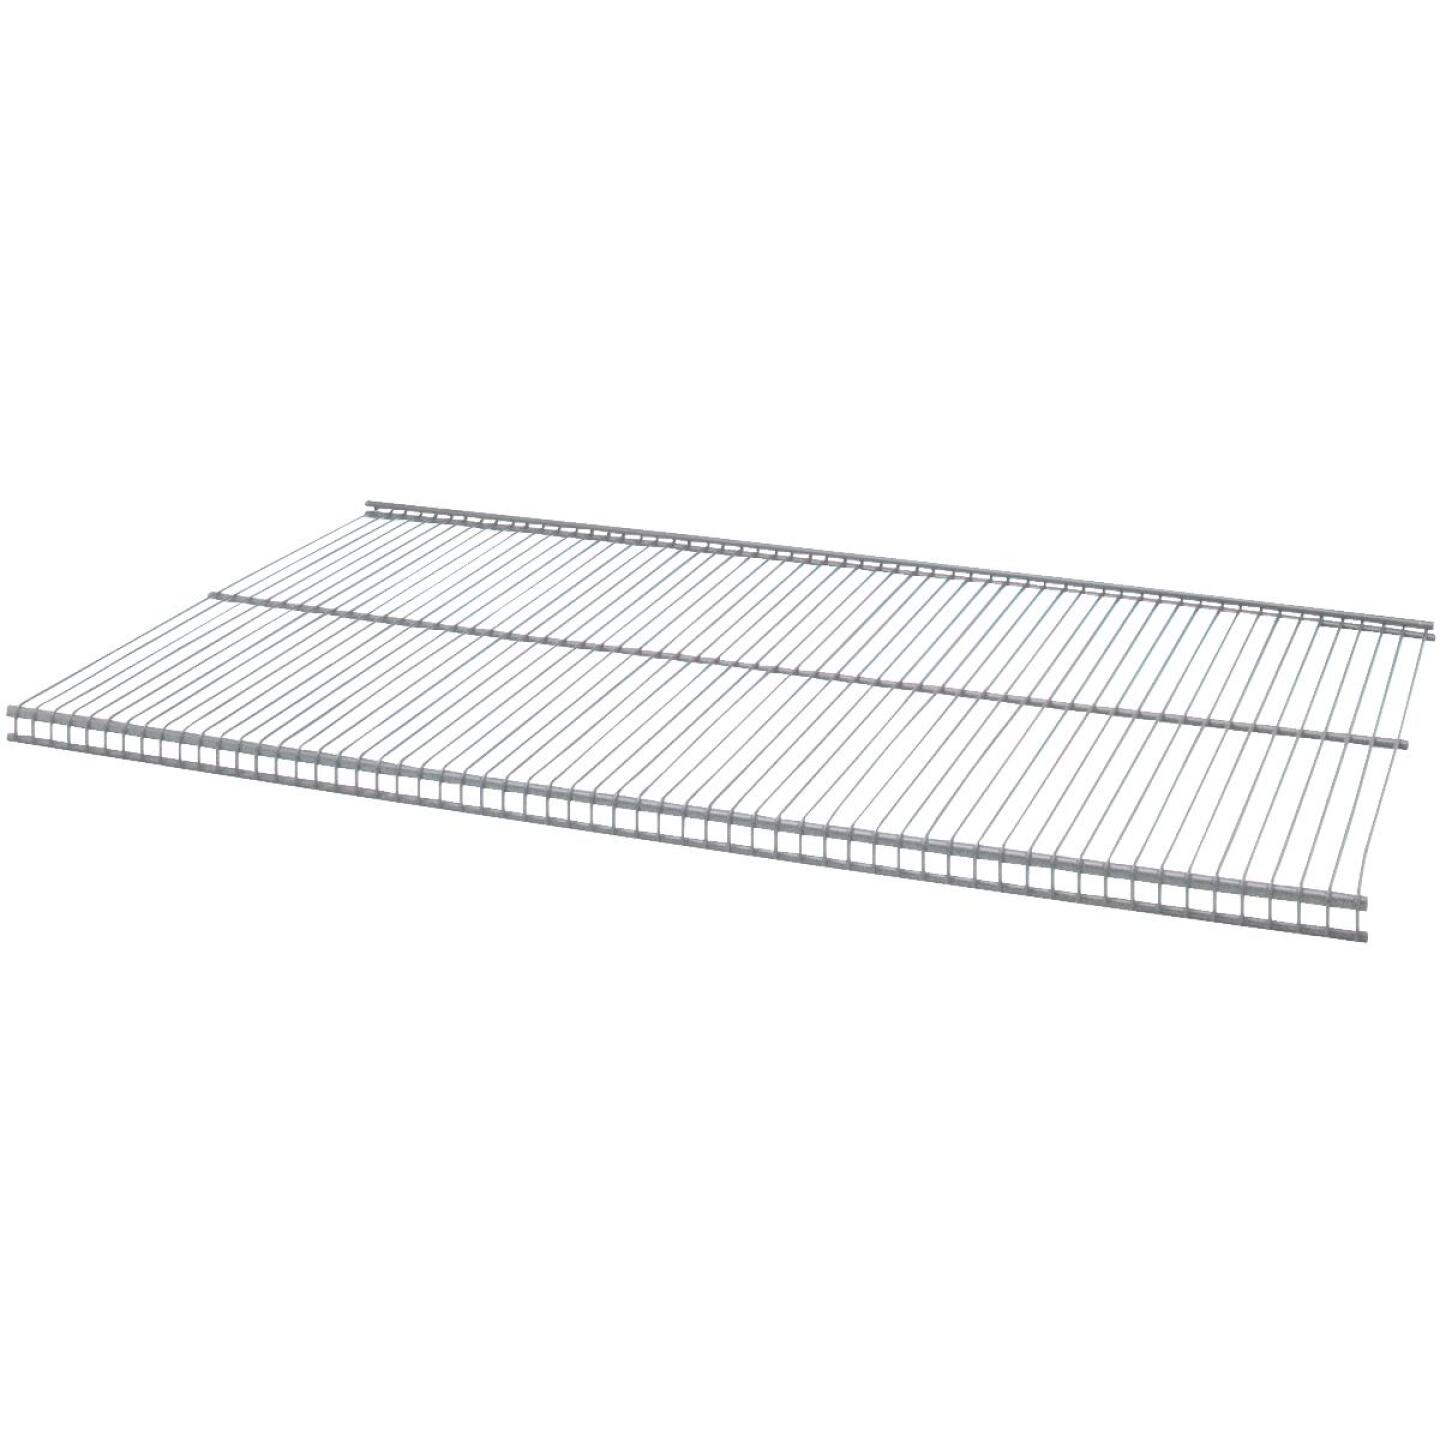 Organized Living FreedomRail 3 Ft. W. x 12 in. D Profile Ventilated Closet Shelf, Nickel Image 1